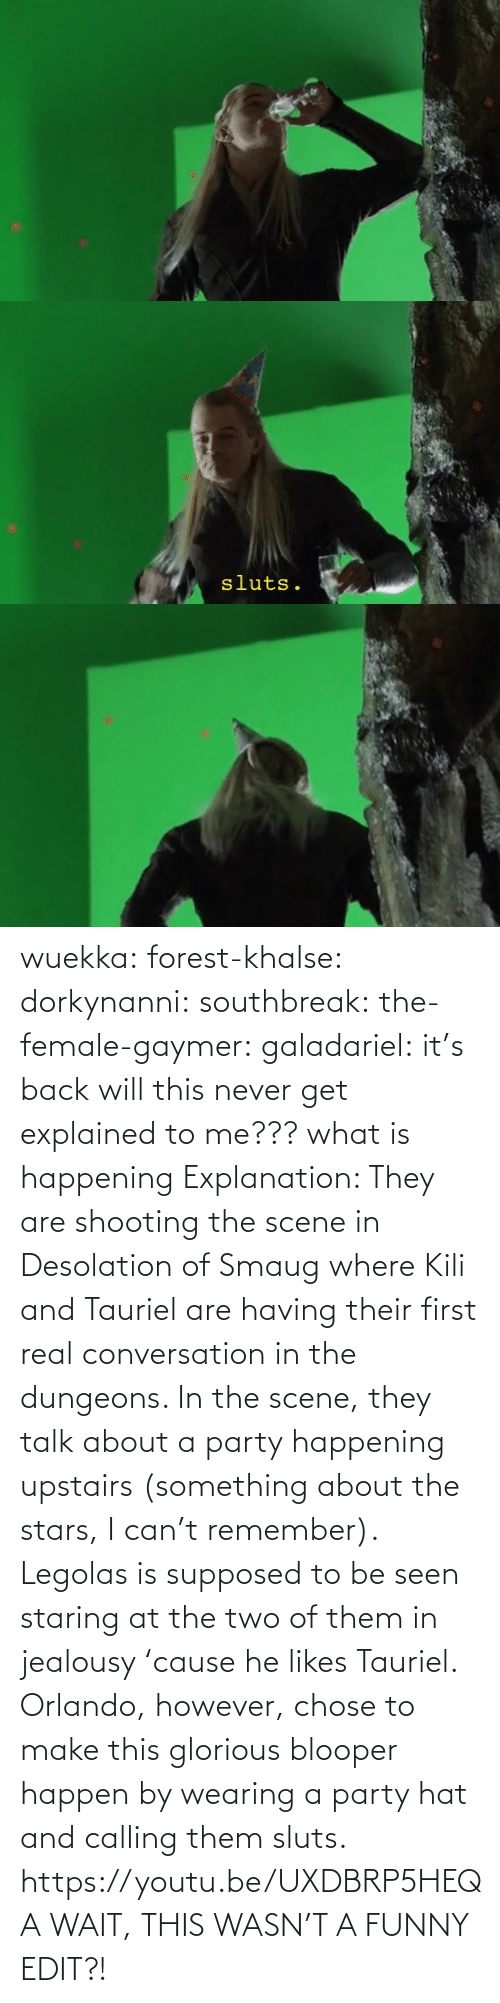 url: wuekka: forest-khalse:   dorkynanni:  southbreak:   the-female-gaymer:   galadariel:  it's back   will this never get explained to me???    what is happening    Explanation:  They are shooting the scene in Desolation of Smaug where Kili and Tauriel are having their first real conversation in the dungeons.  In the scene, they talk about a party happening upstairs (something about the stars, I can't remember). Legolas is supposed to be seen staring at the two of them in jealousy 'cause he likes Tauriel.  Orlando, however, chose to make this glorious blooper happen by wearing a party hat and calling them sluts.    https://youtu.be/UXDBRP5HEQA    WAIT, THIS WASN'T A FUNNY EDIT?!